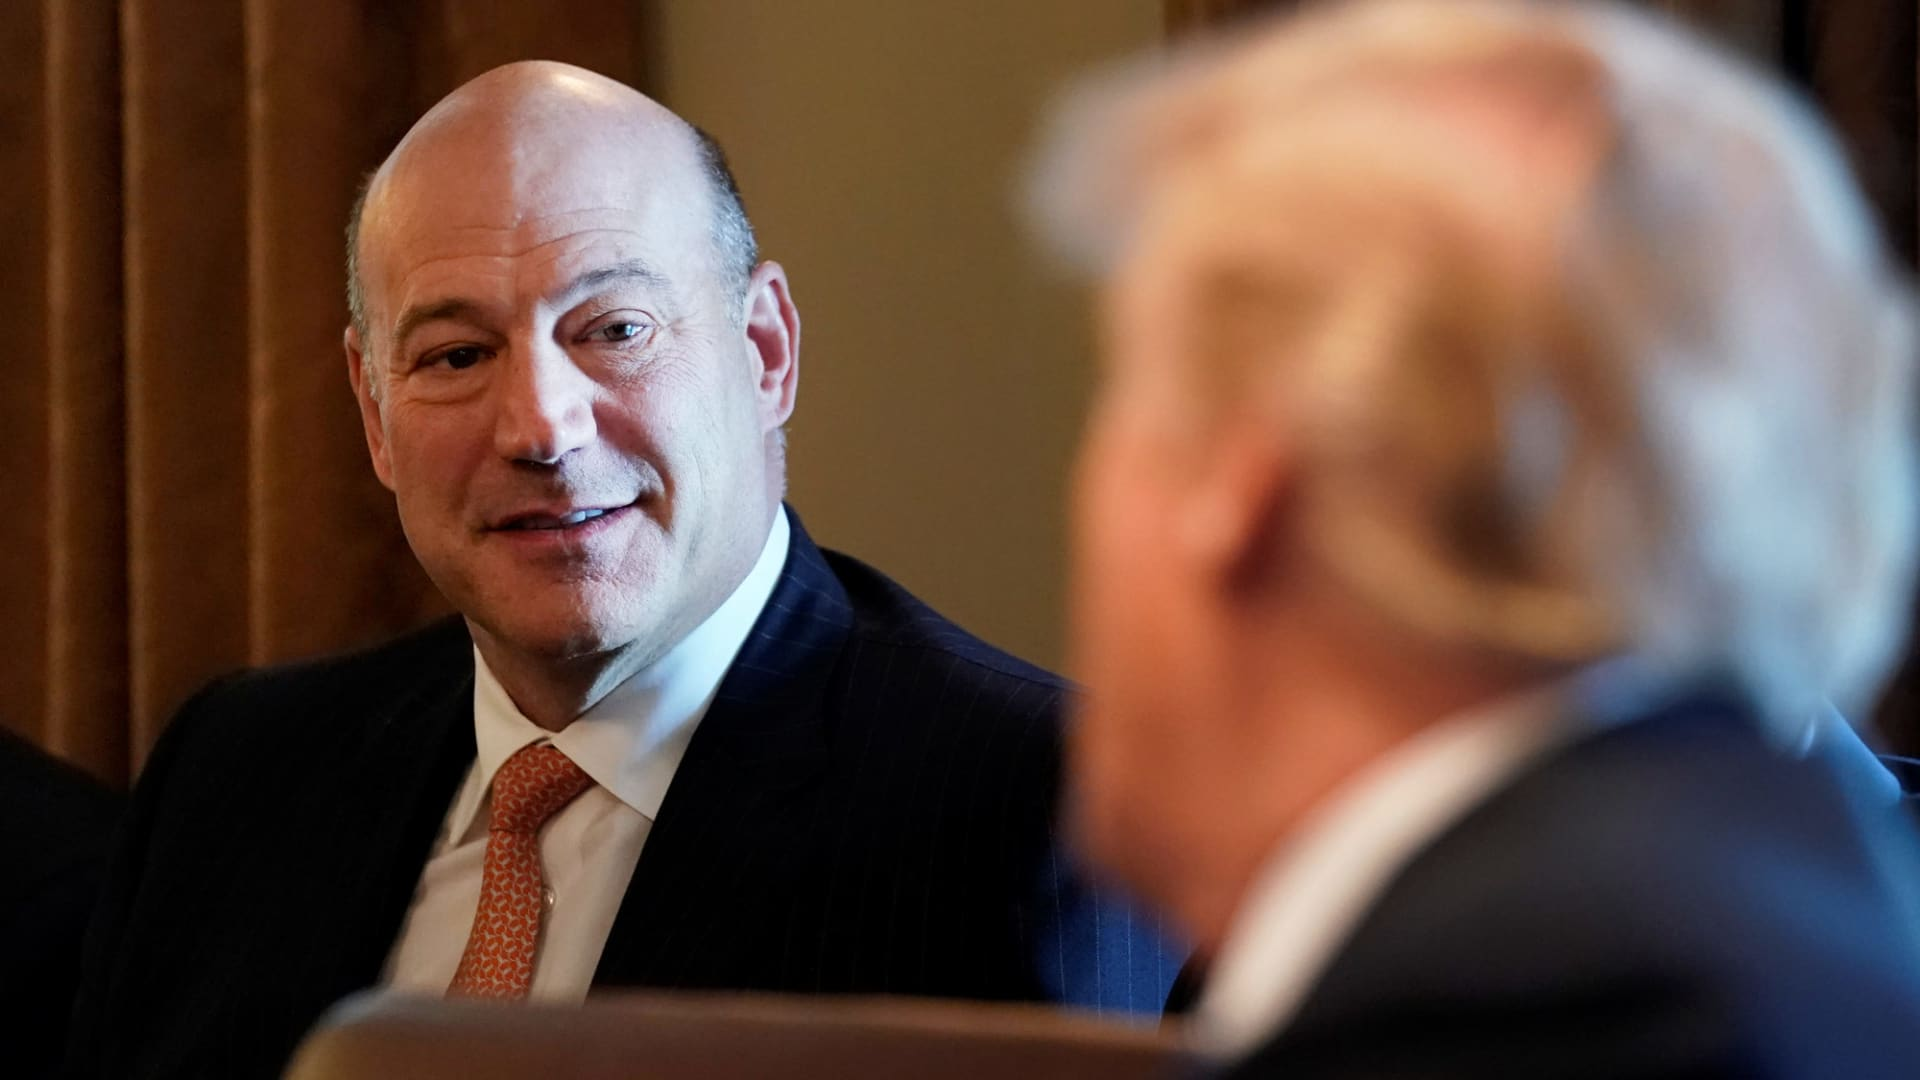 President Donald Trump praises departing economic adviser Gary Cohn (L) during a Cabinet meeting at the White House, Washington, March 8, 2018.